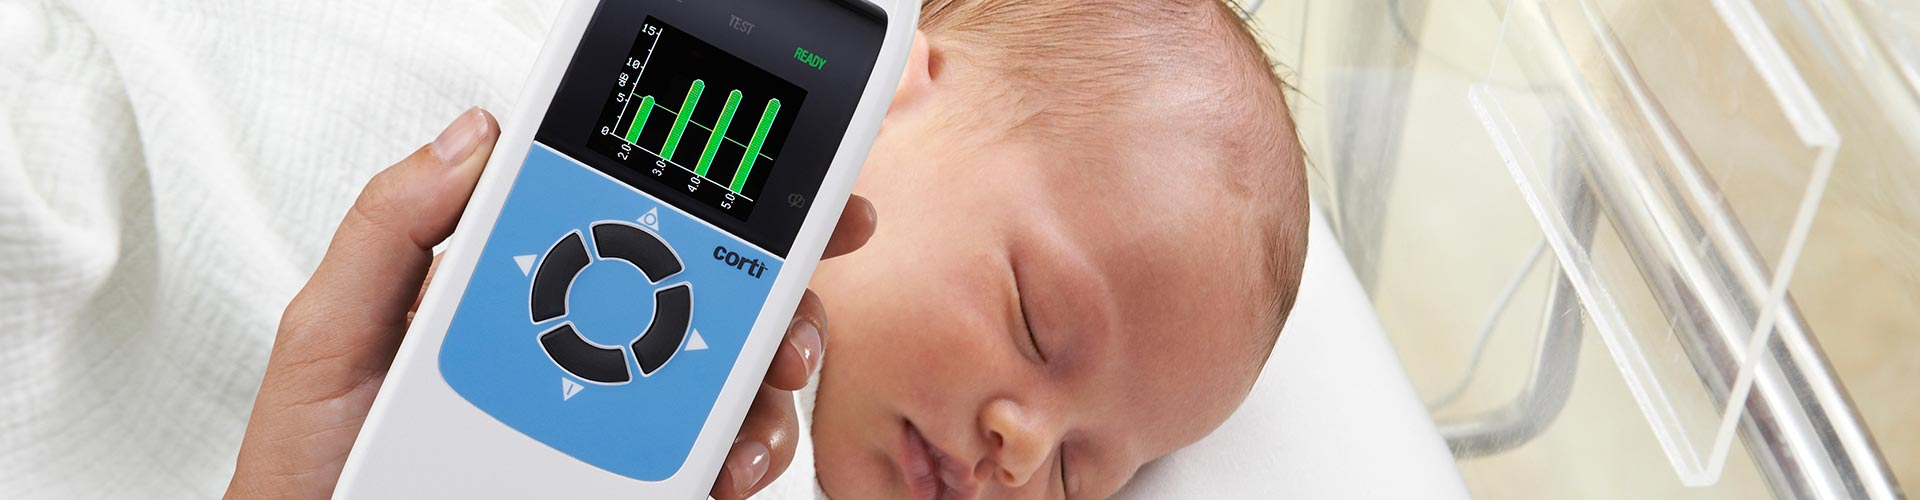 GSI Corti Otoacoustic Emissions Infant Testing